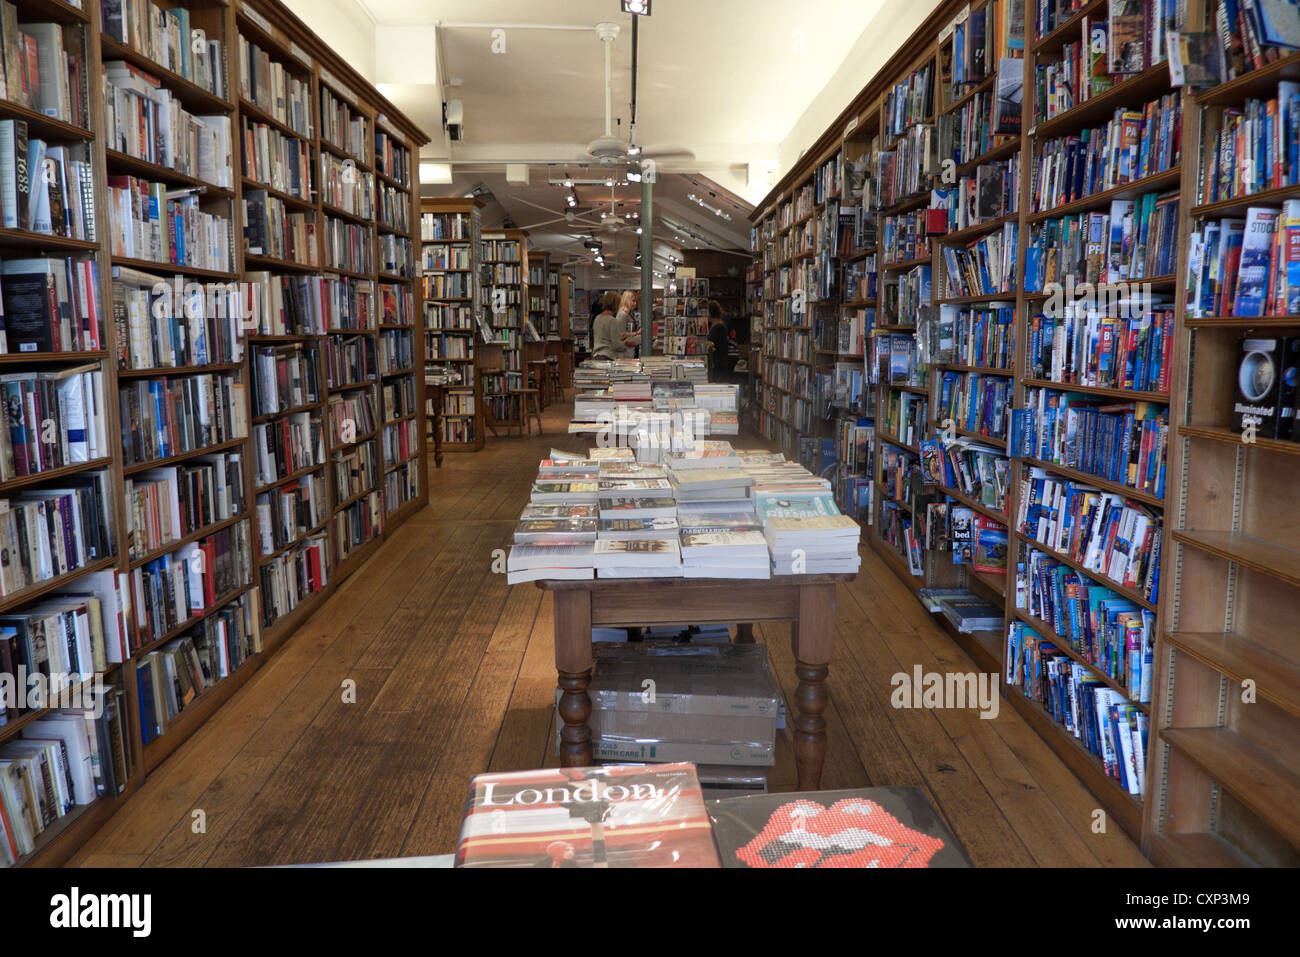 An inside view of books on book shelves atTopping & Co. Booksellers store in the City of Bath, Avon Somerset, - Stock Image